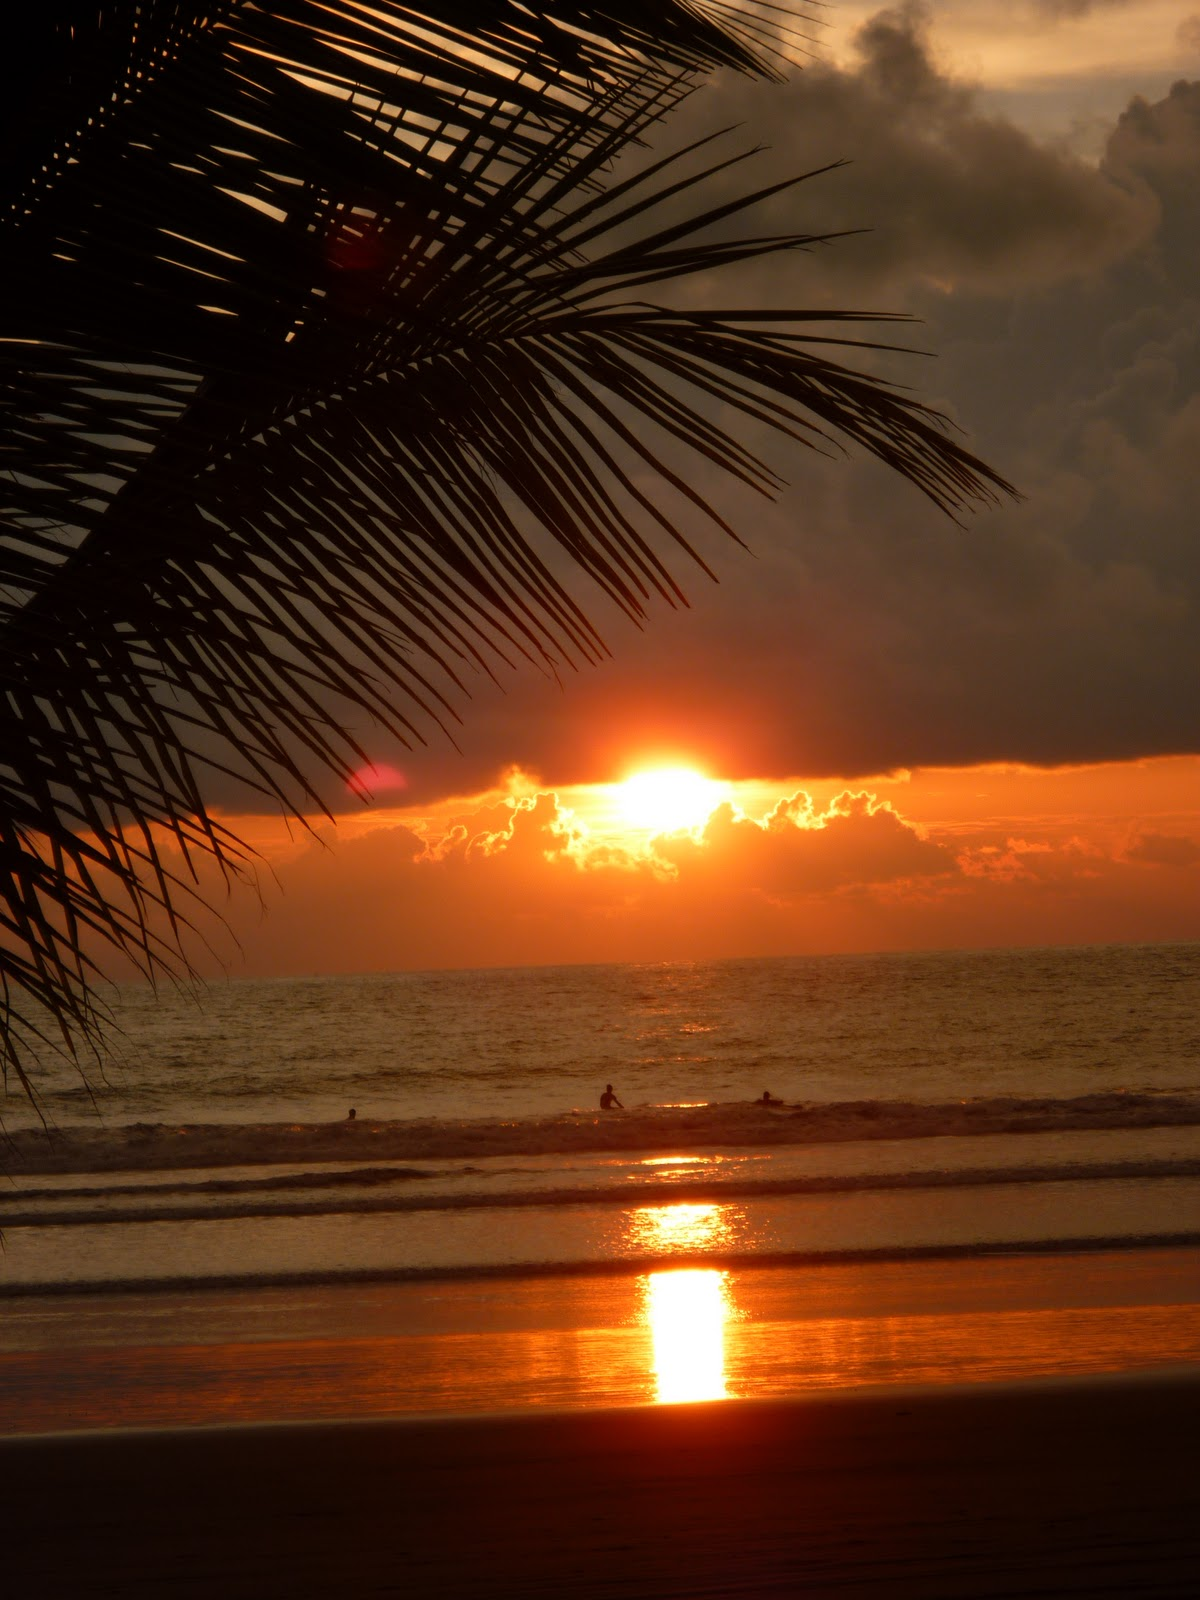 hotel catalina playa jaco costa rica photos taken sunset time today. Black Bedroom Furniture Sets. Home Design Ideas